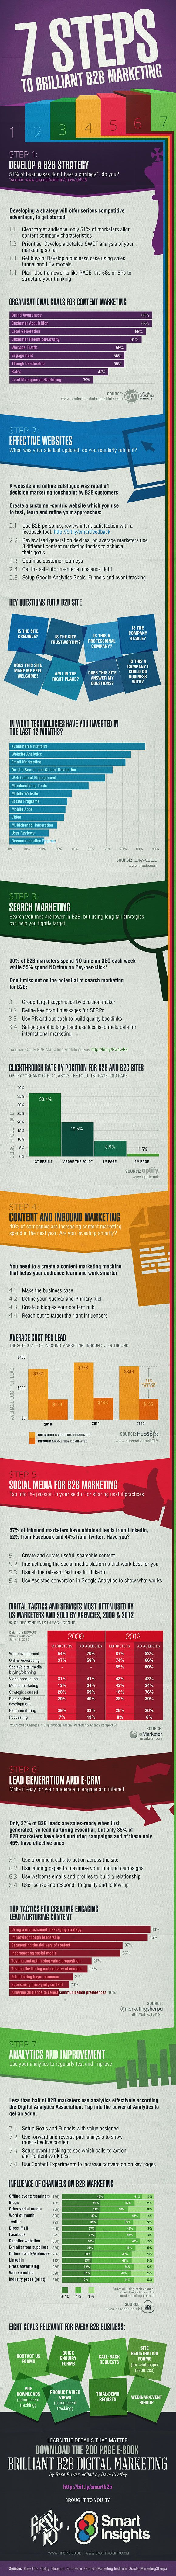 B2B Marketing Plan Outline: Quick and concise overview of 7 basic pillars in B2B marketing in the modern business context that gives a holistic view and helps to keep in the loop. Learn the route from…